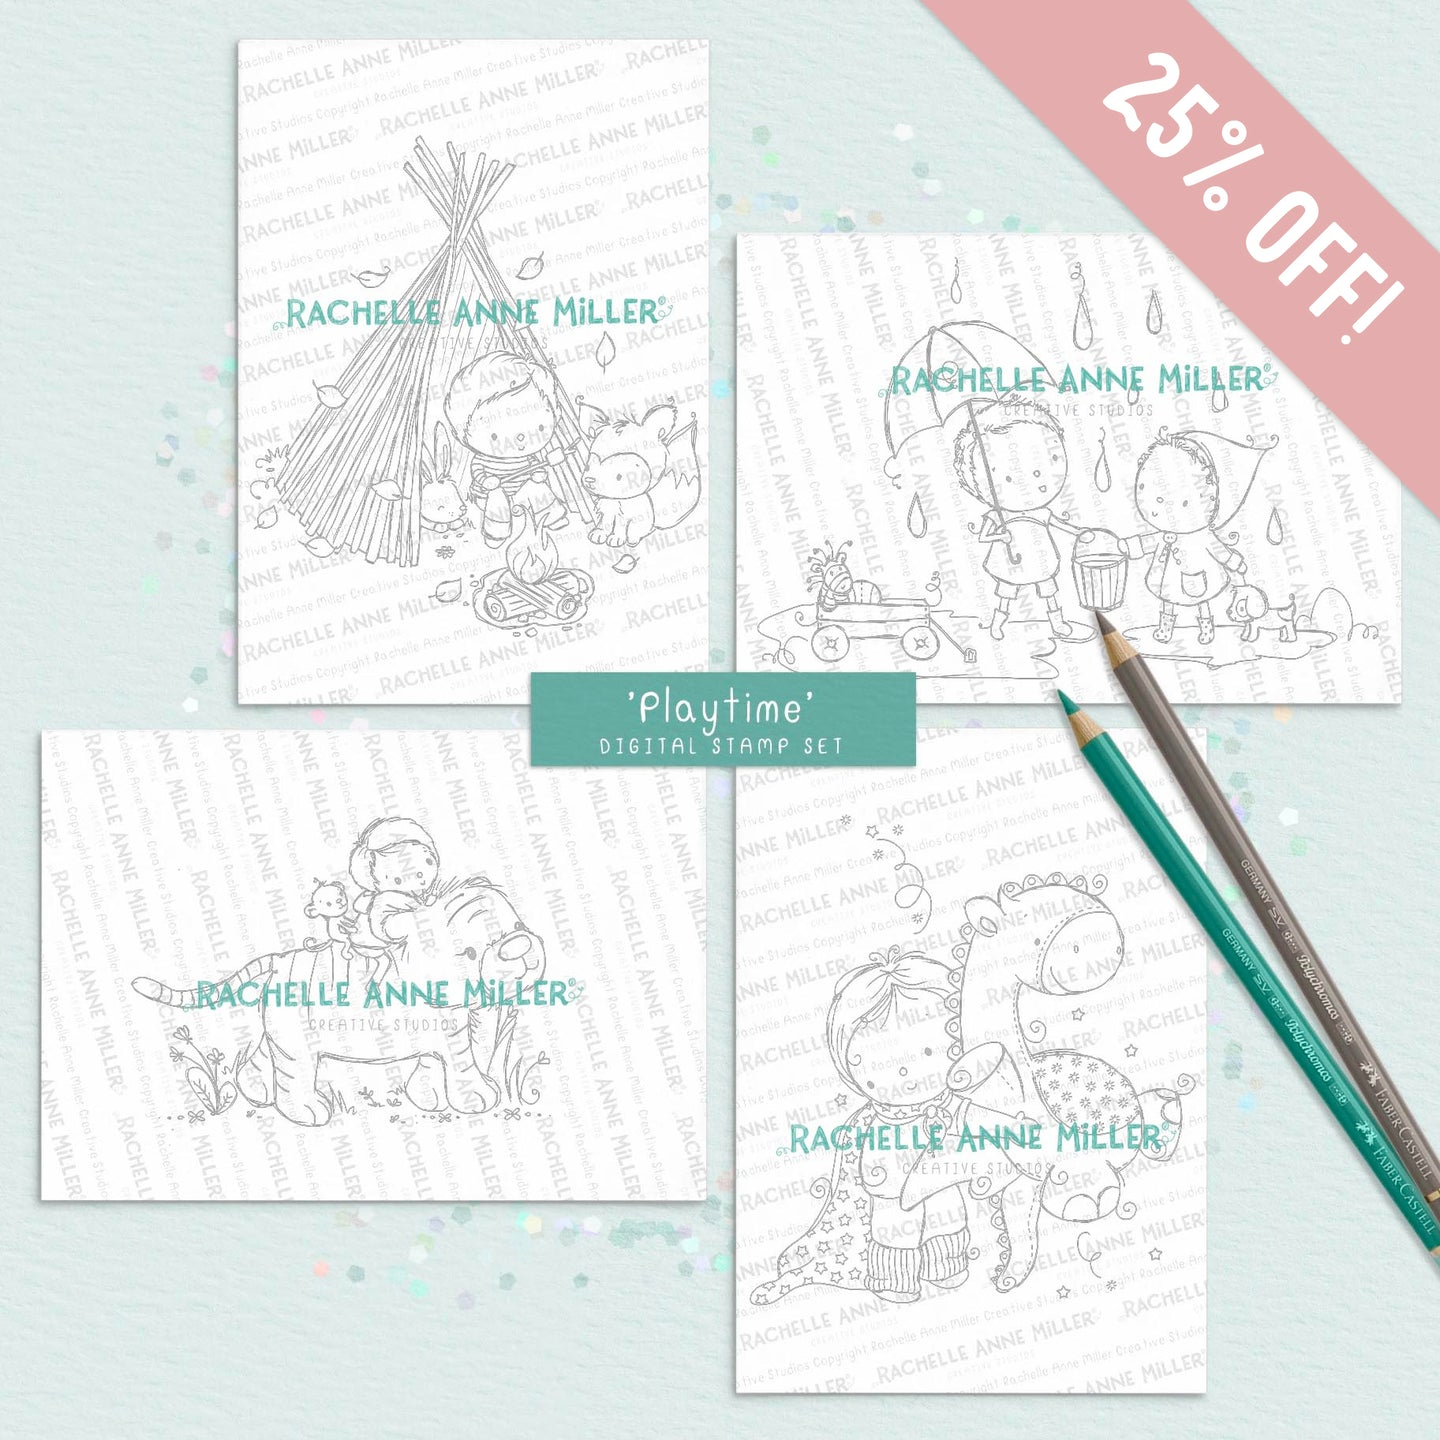 'Playtime' Digital Stamp Set